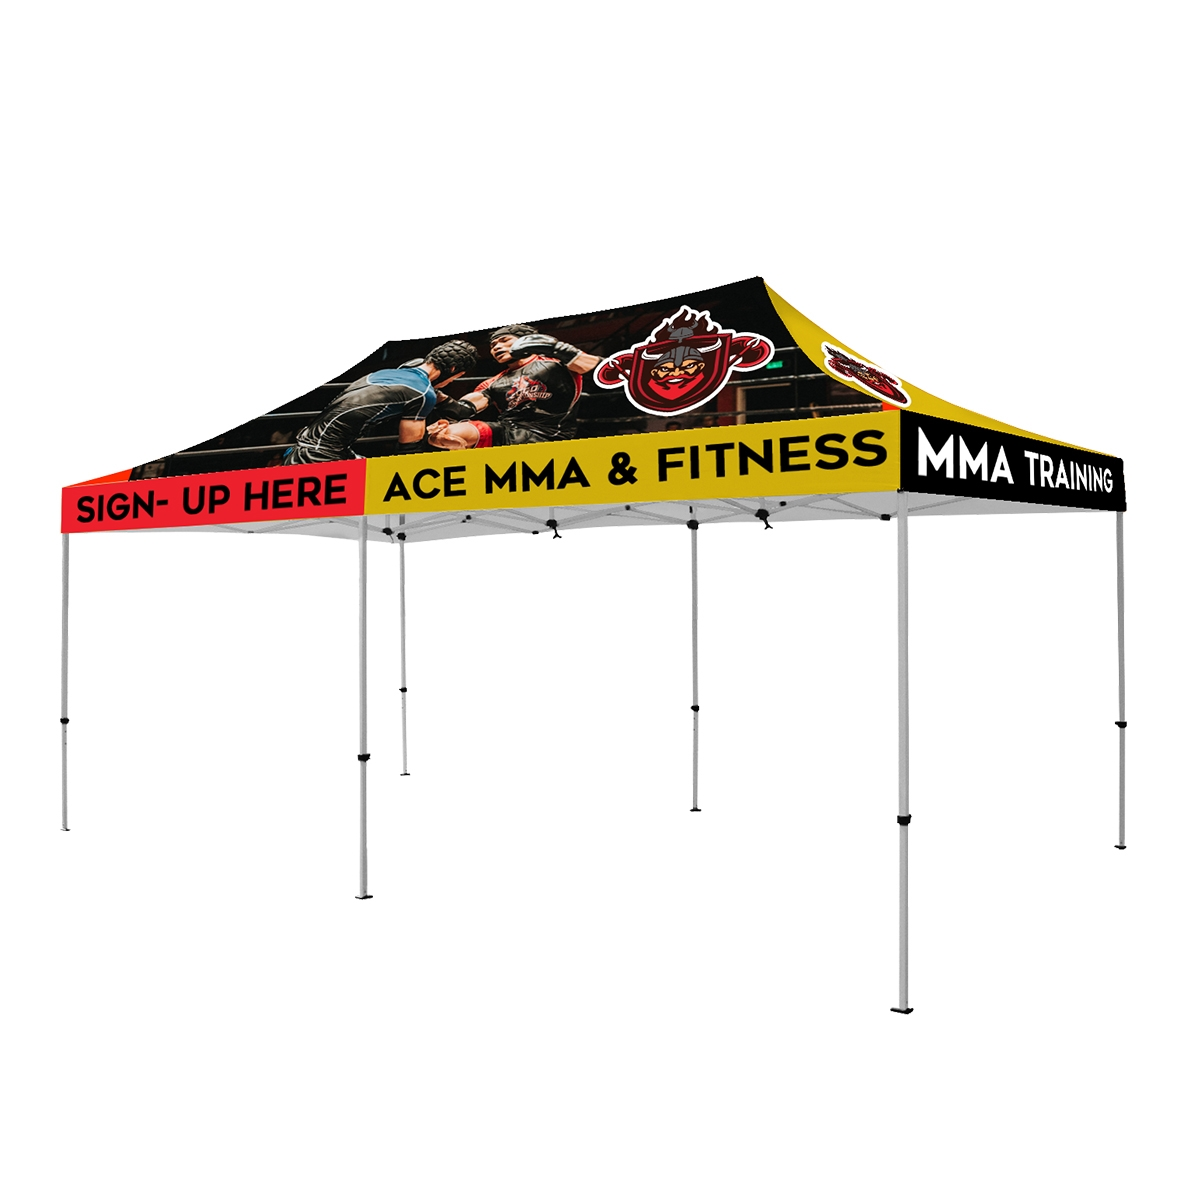 20 x 10 ft. Tent Full-Color Canopy with 40mm Aluminum Frame